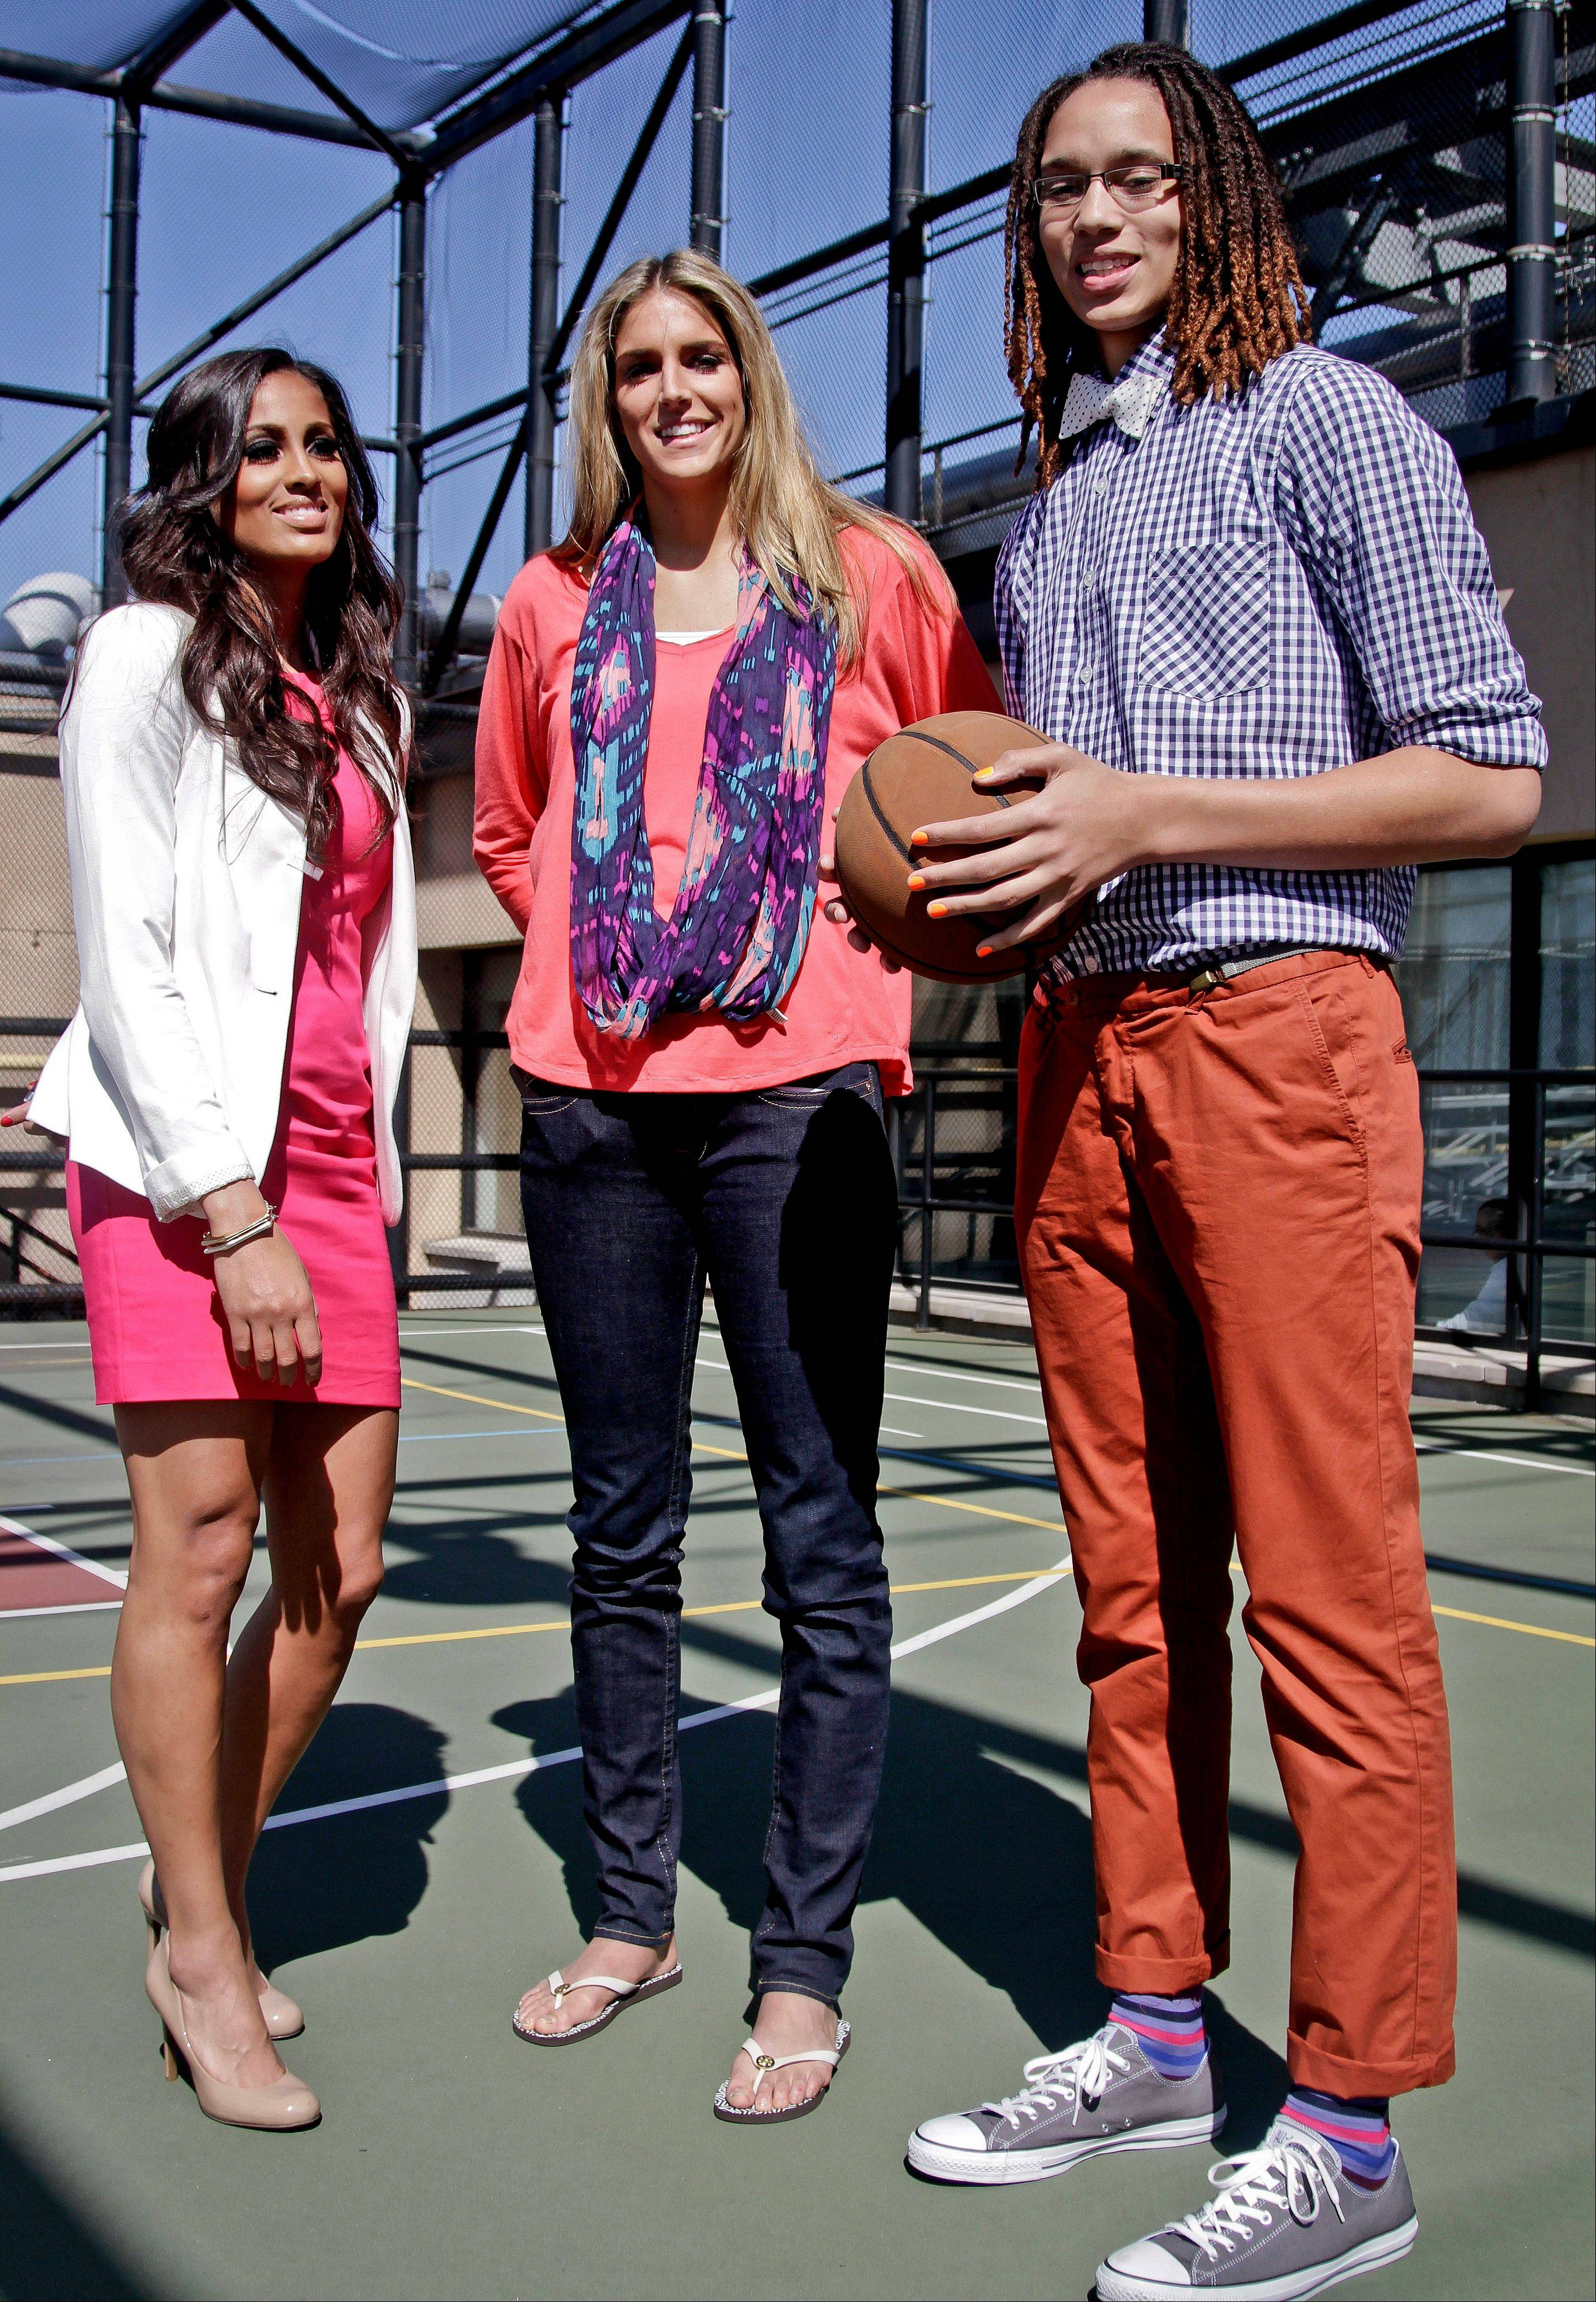 Associated Press The WNBA is touting Skylar Diggins, left, Elena Delle Donne and Brittney Griner as the �3 to See� this season. Griner, Delle Donne and Diggins were drafted 1-2-3 in April.